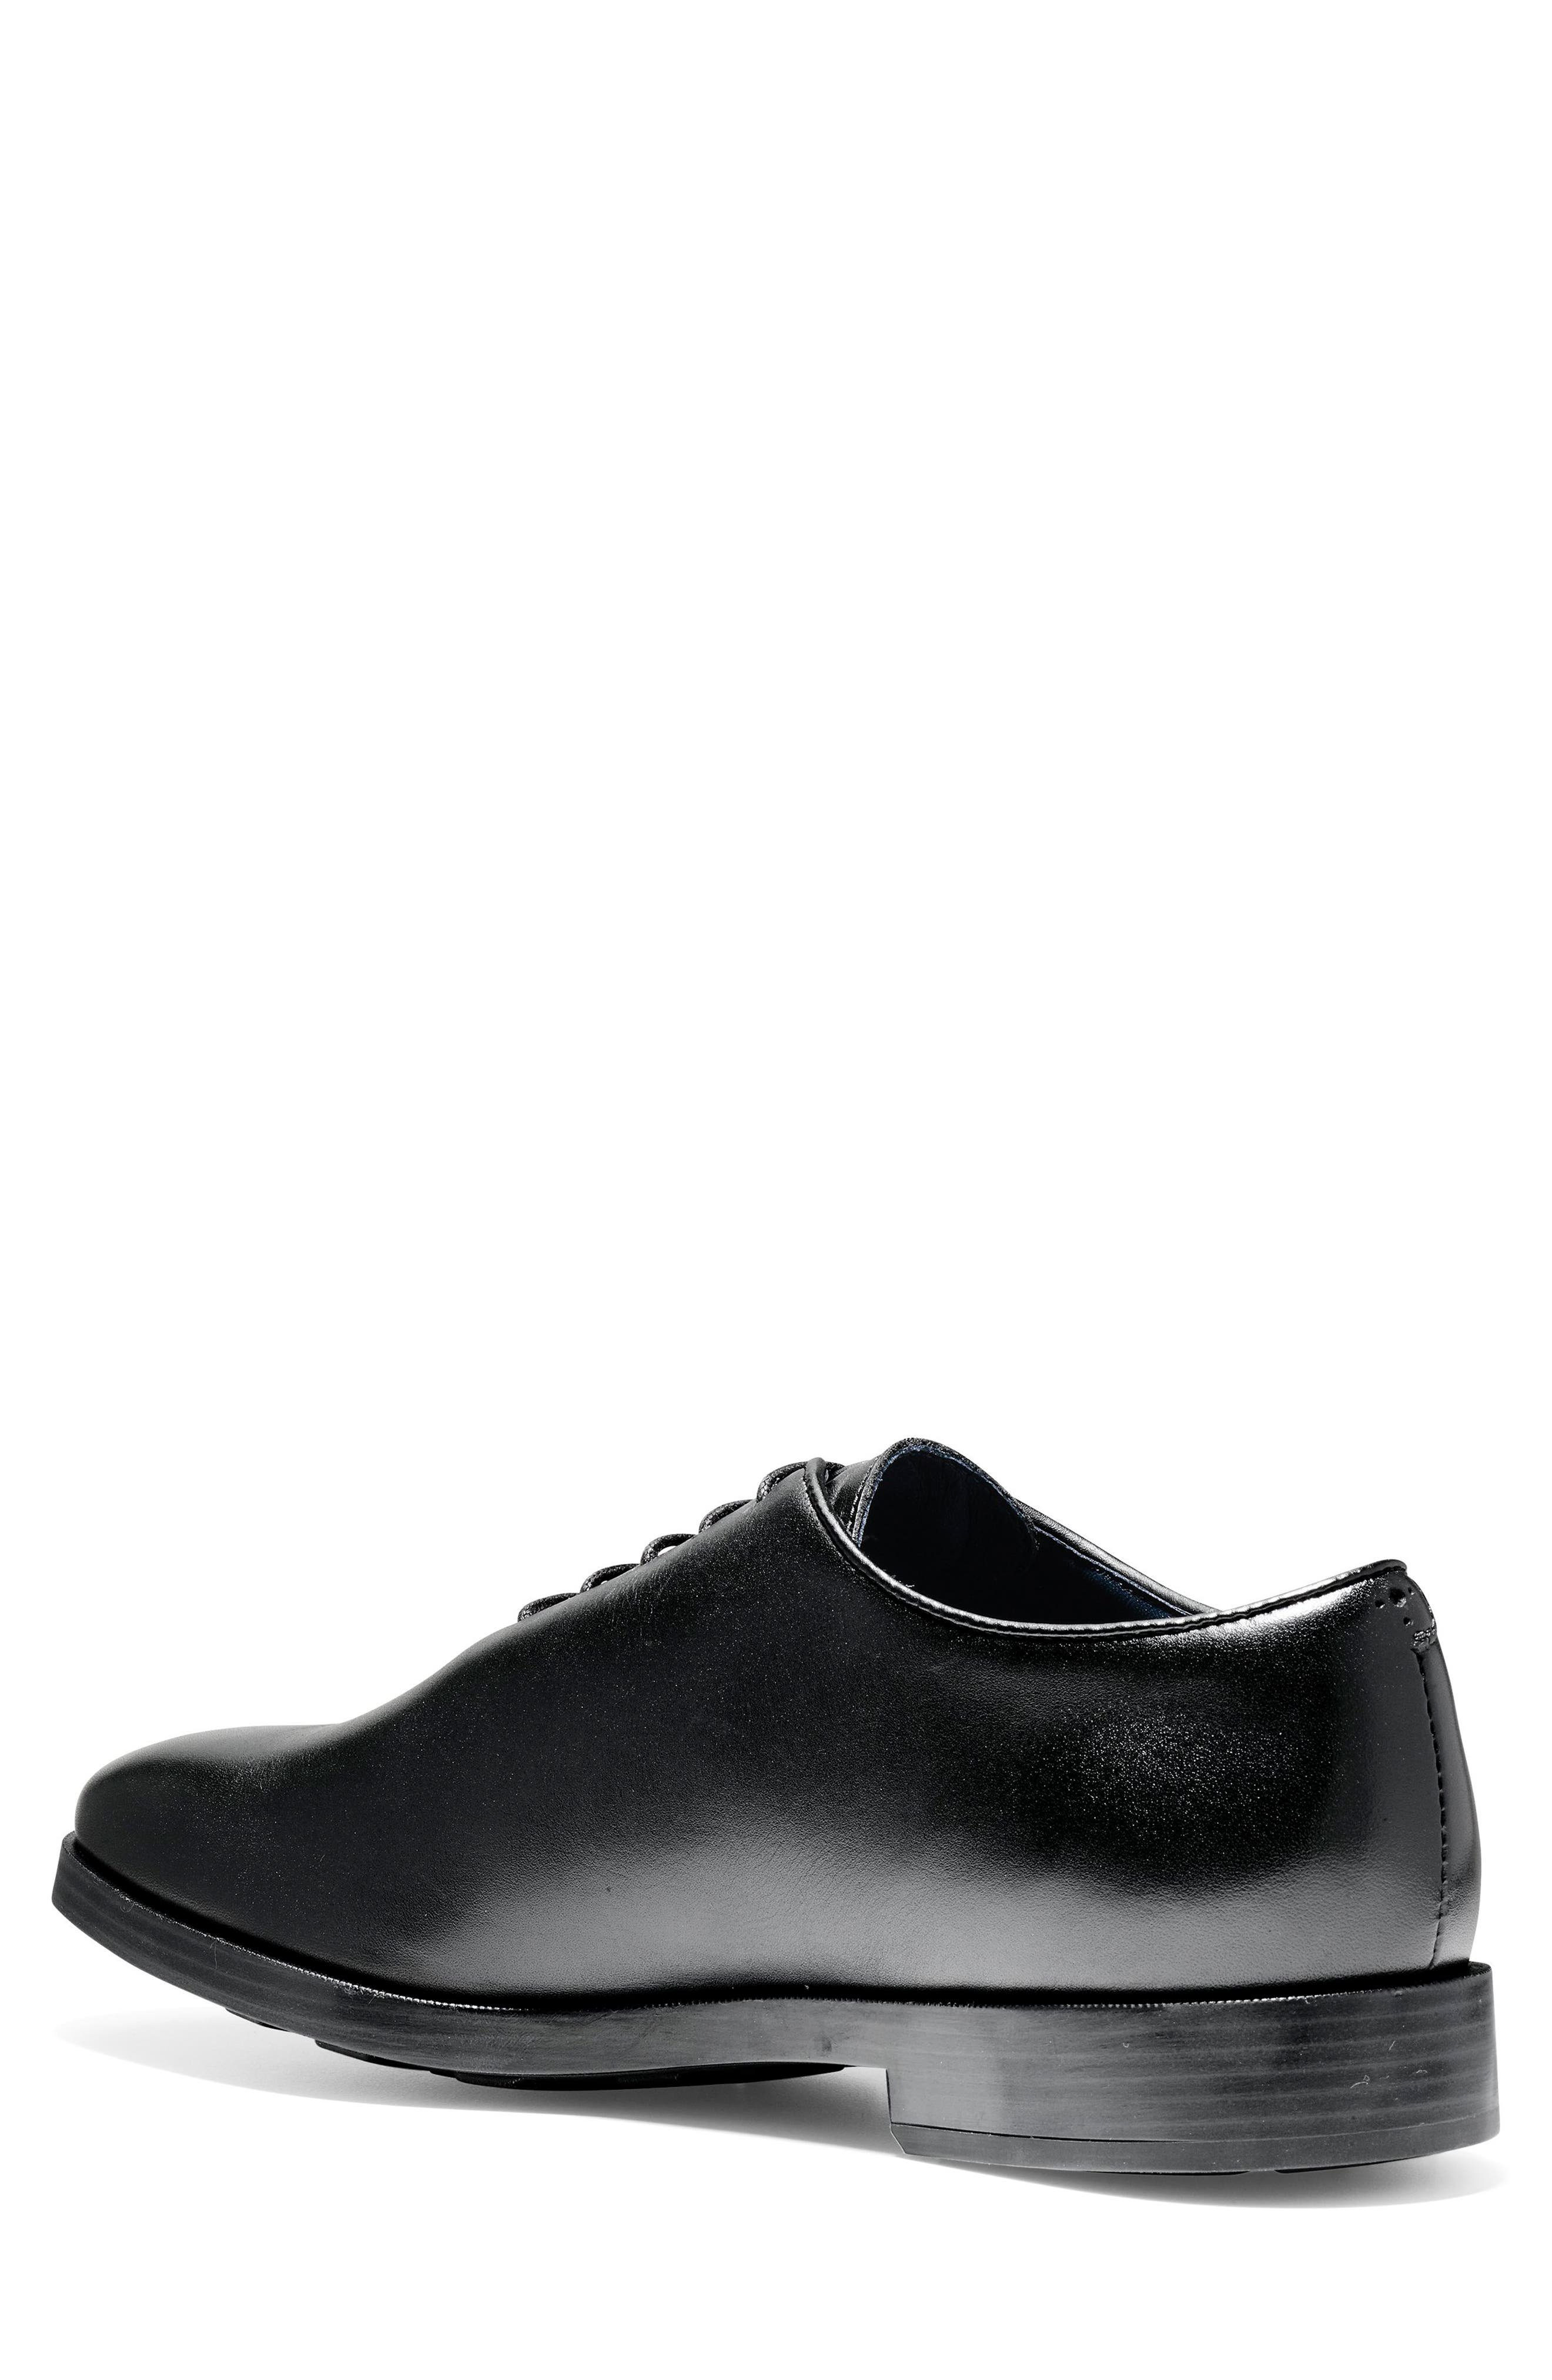 Jefferson Waterproof Wholecut Oxford,                             Alternate thumbnail 2, color,                             BLACK LEATHER